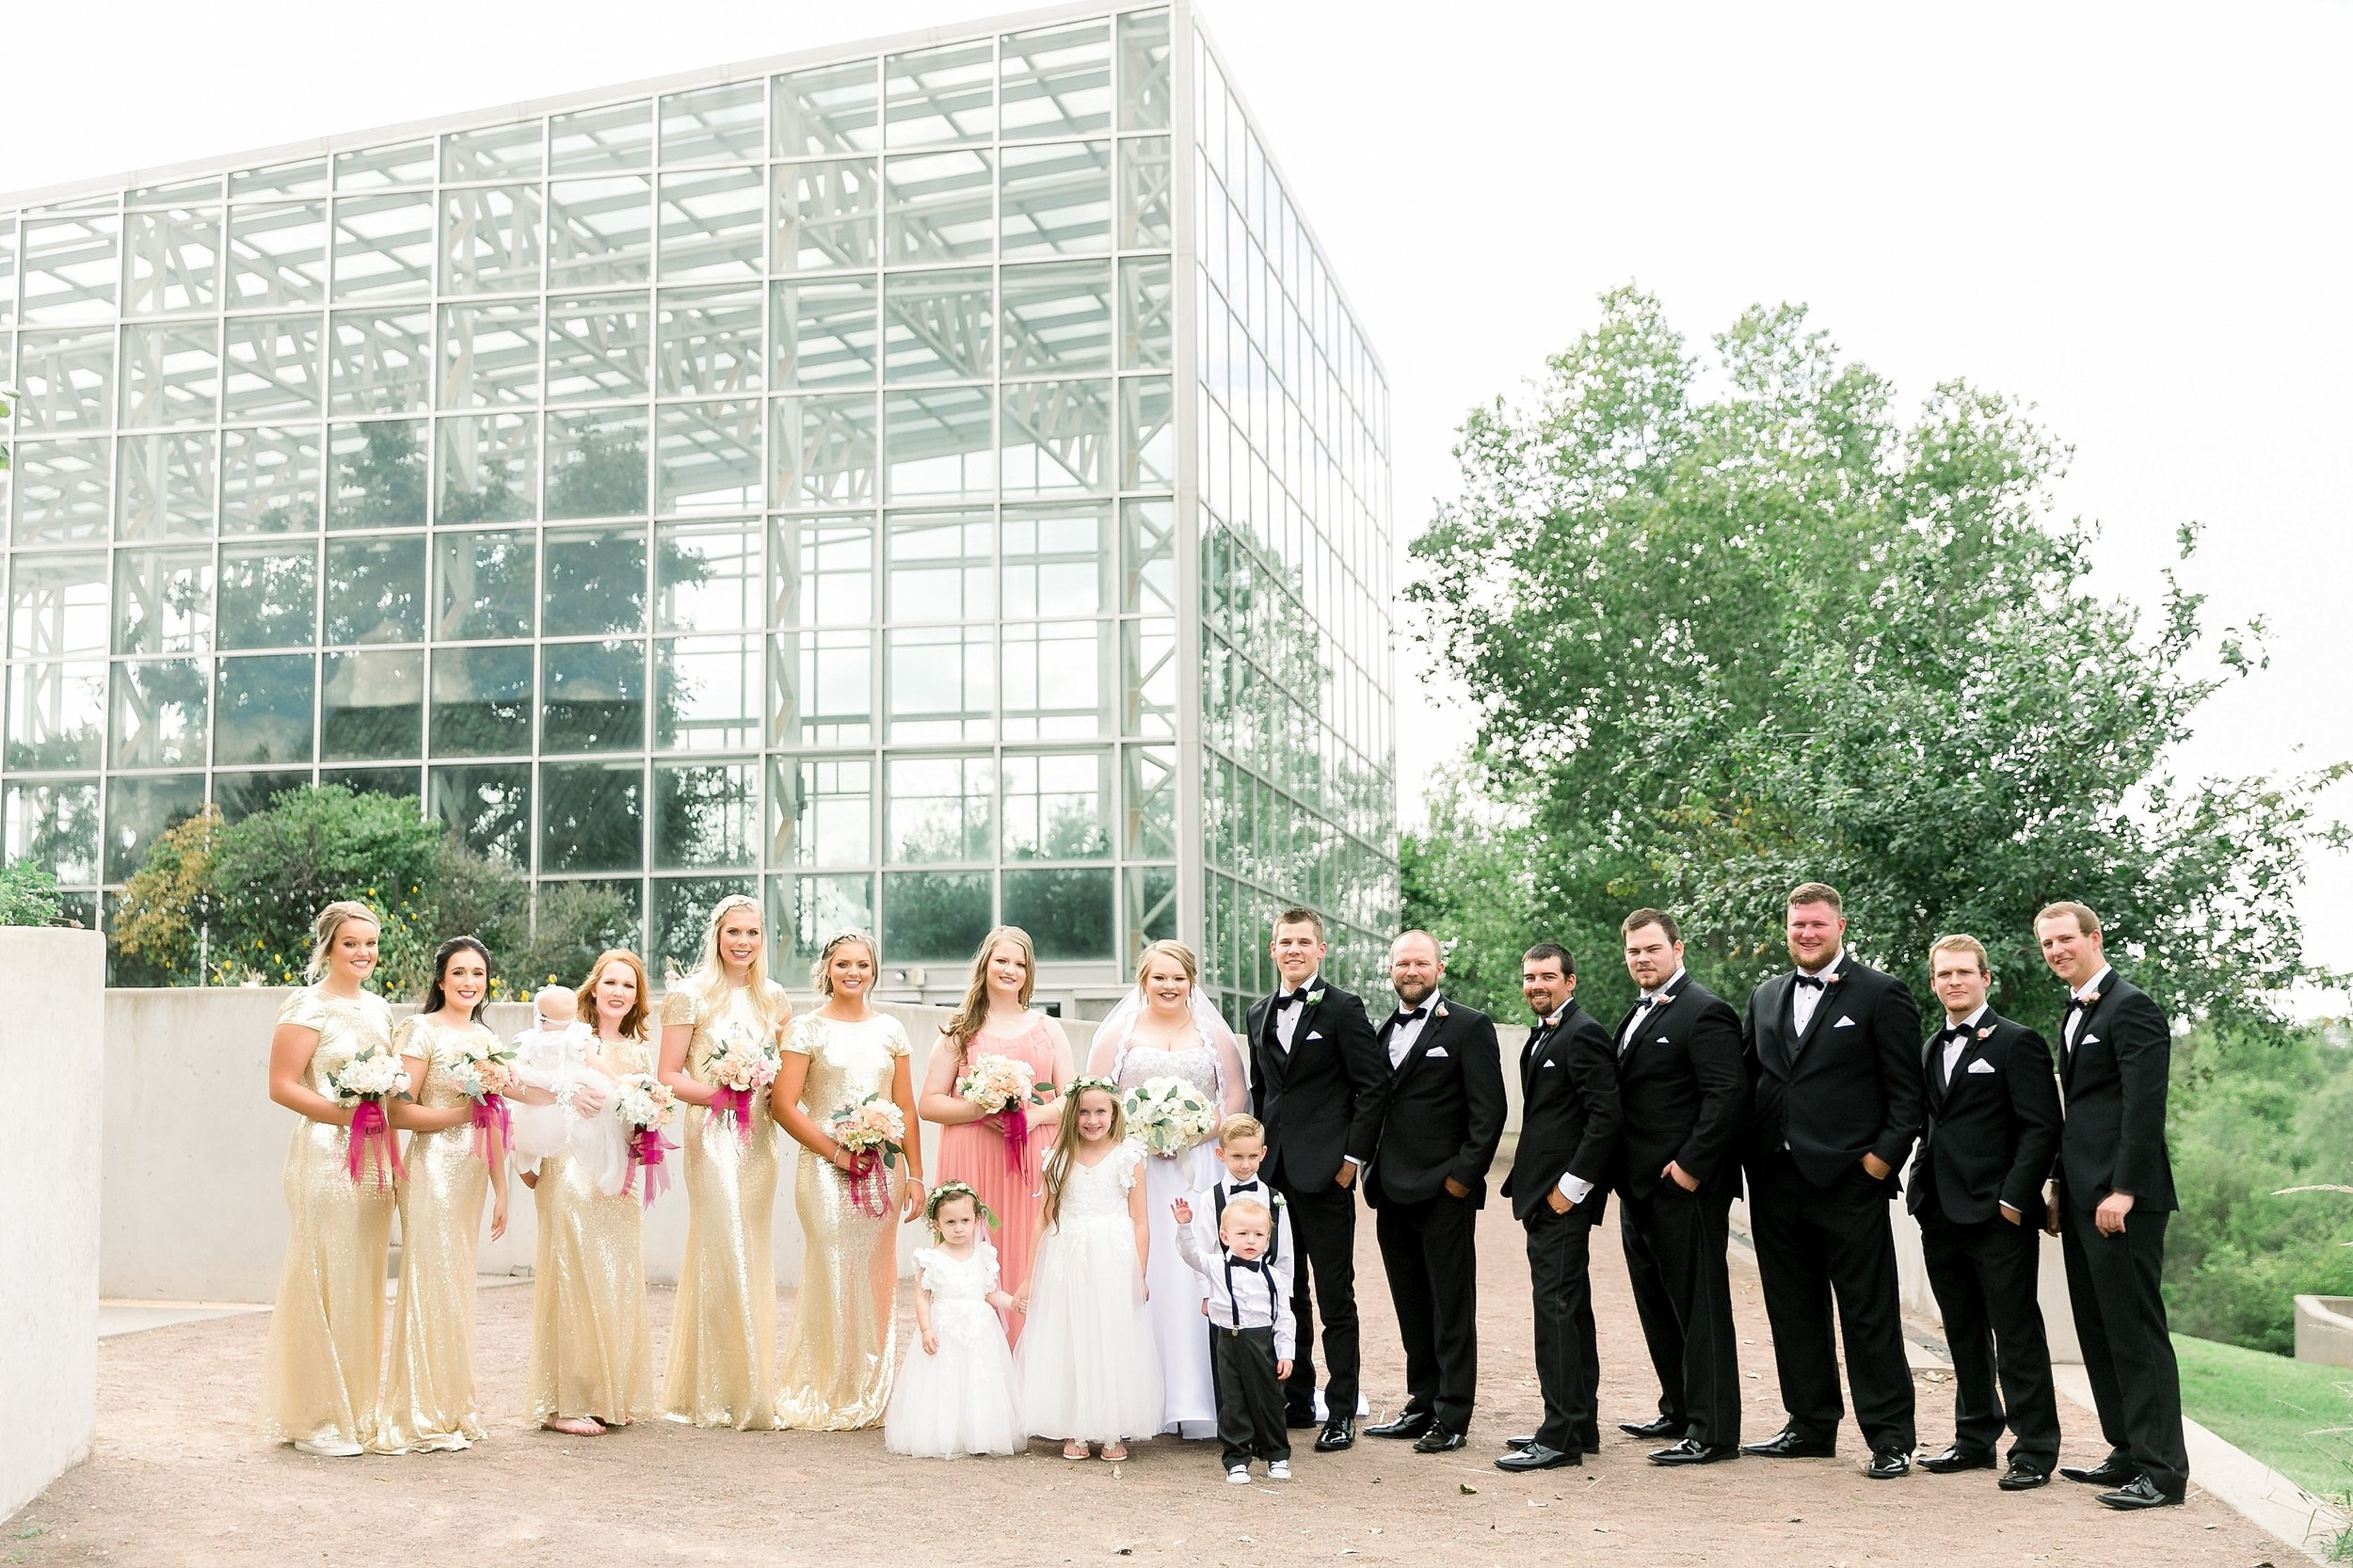 Ryanne-and-william-wedding-at-river-bend-nature-center-wichita-falls-texas-two-clever-chicks-0041.jpg